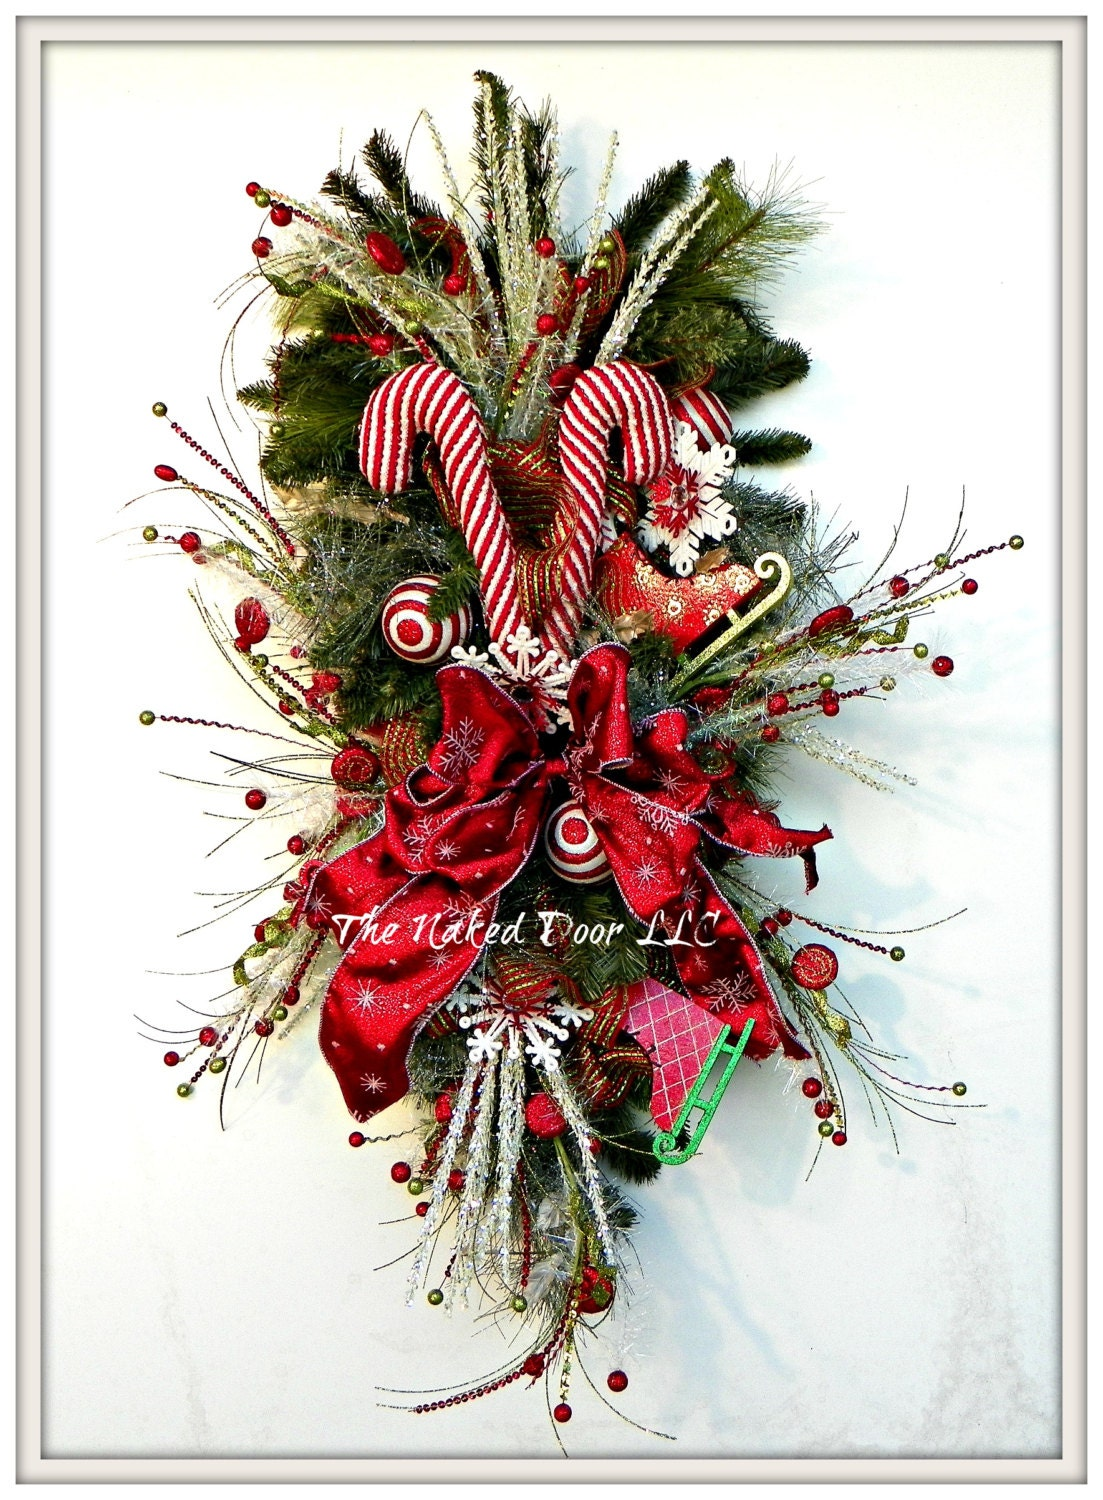 Christmas Wreath Christmas Swag Candy Cane Wreath Ice Skate